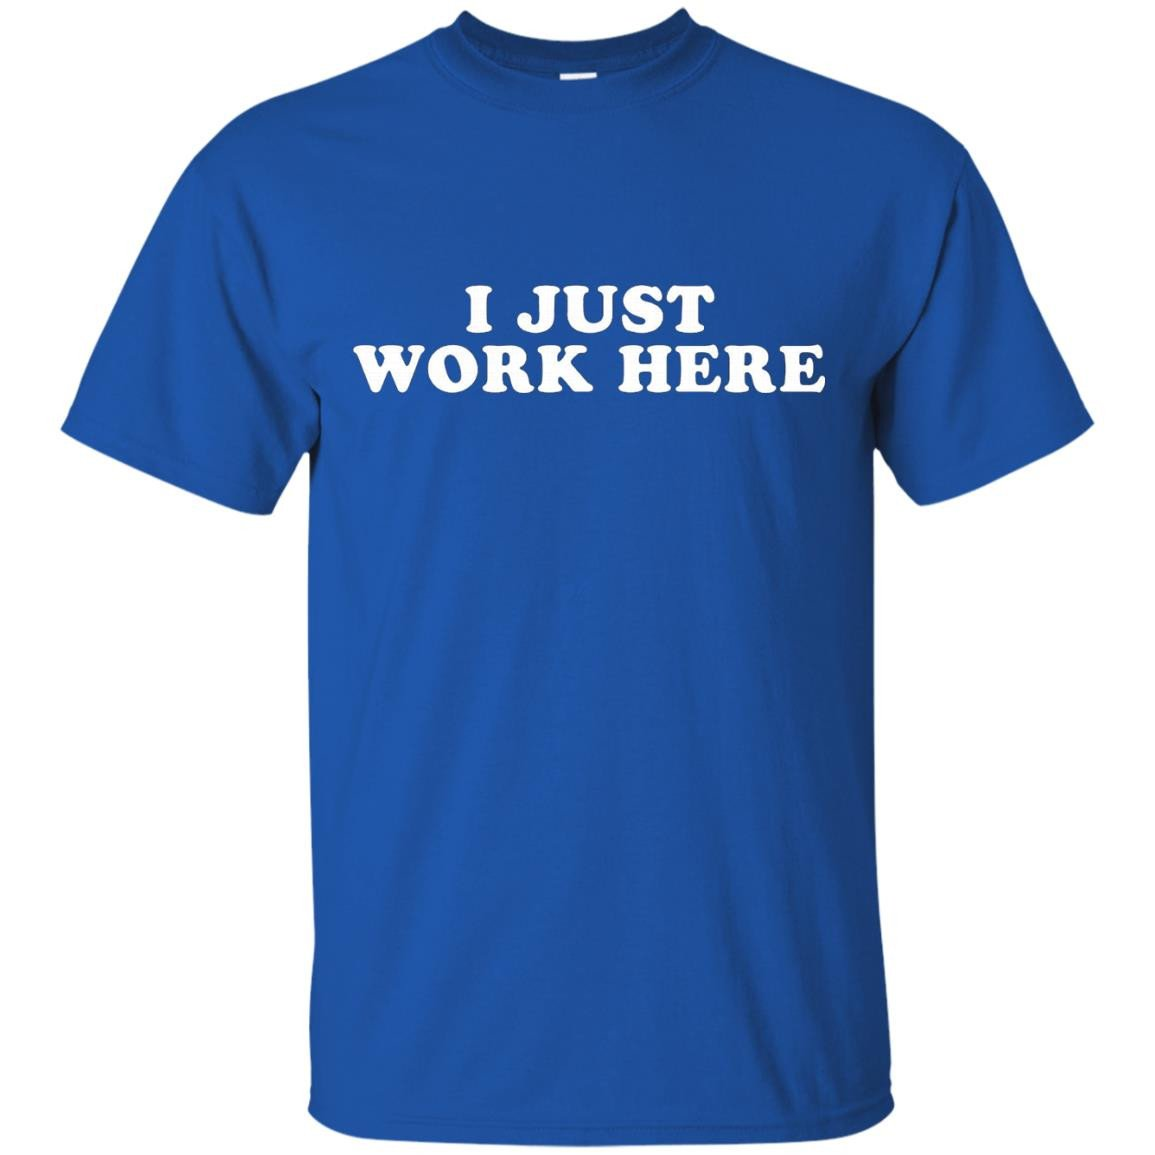 I Just Work Here T-Shirt